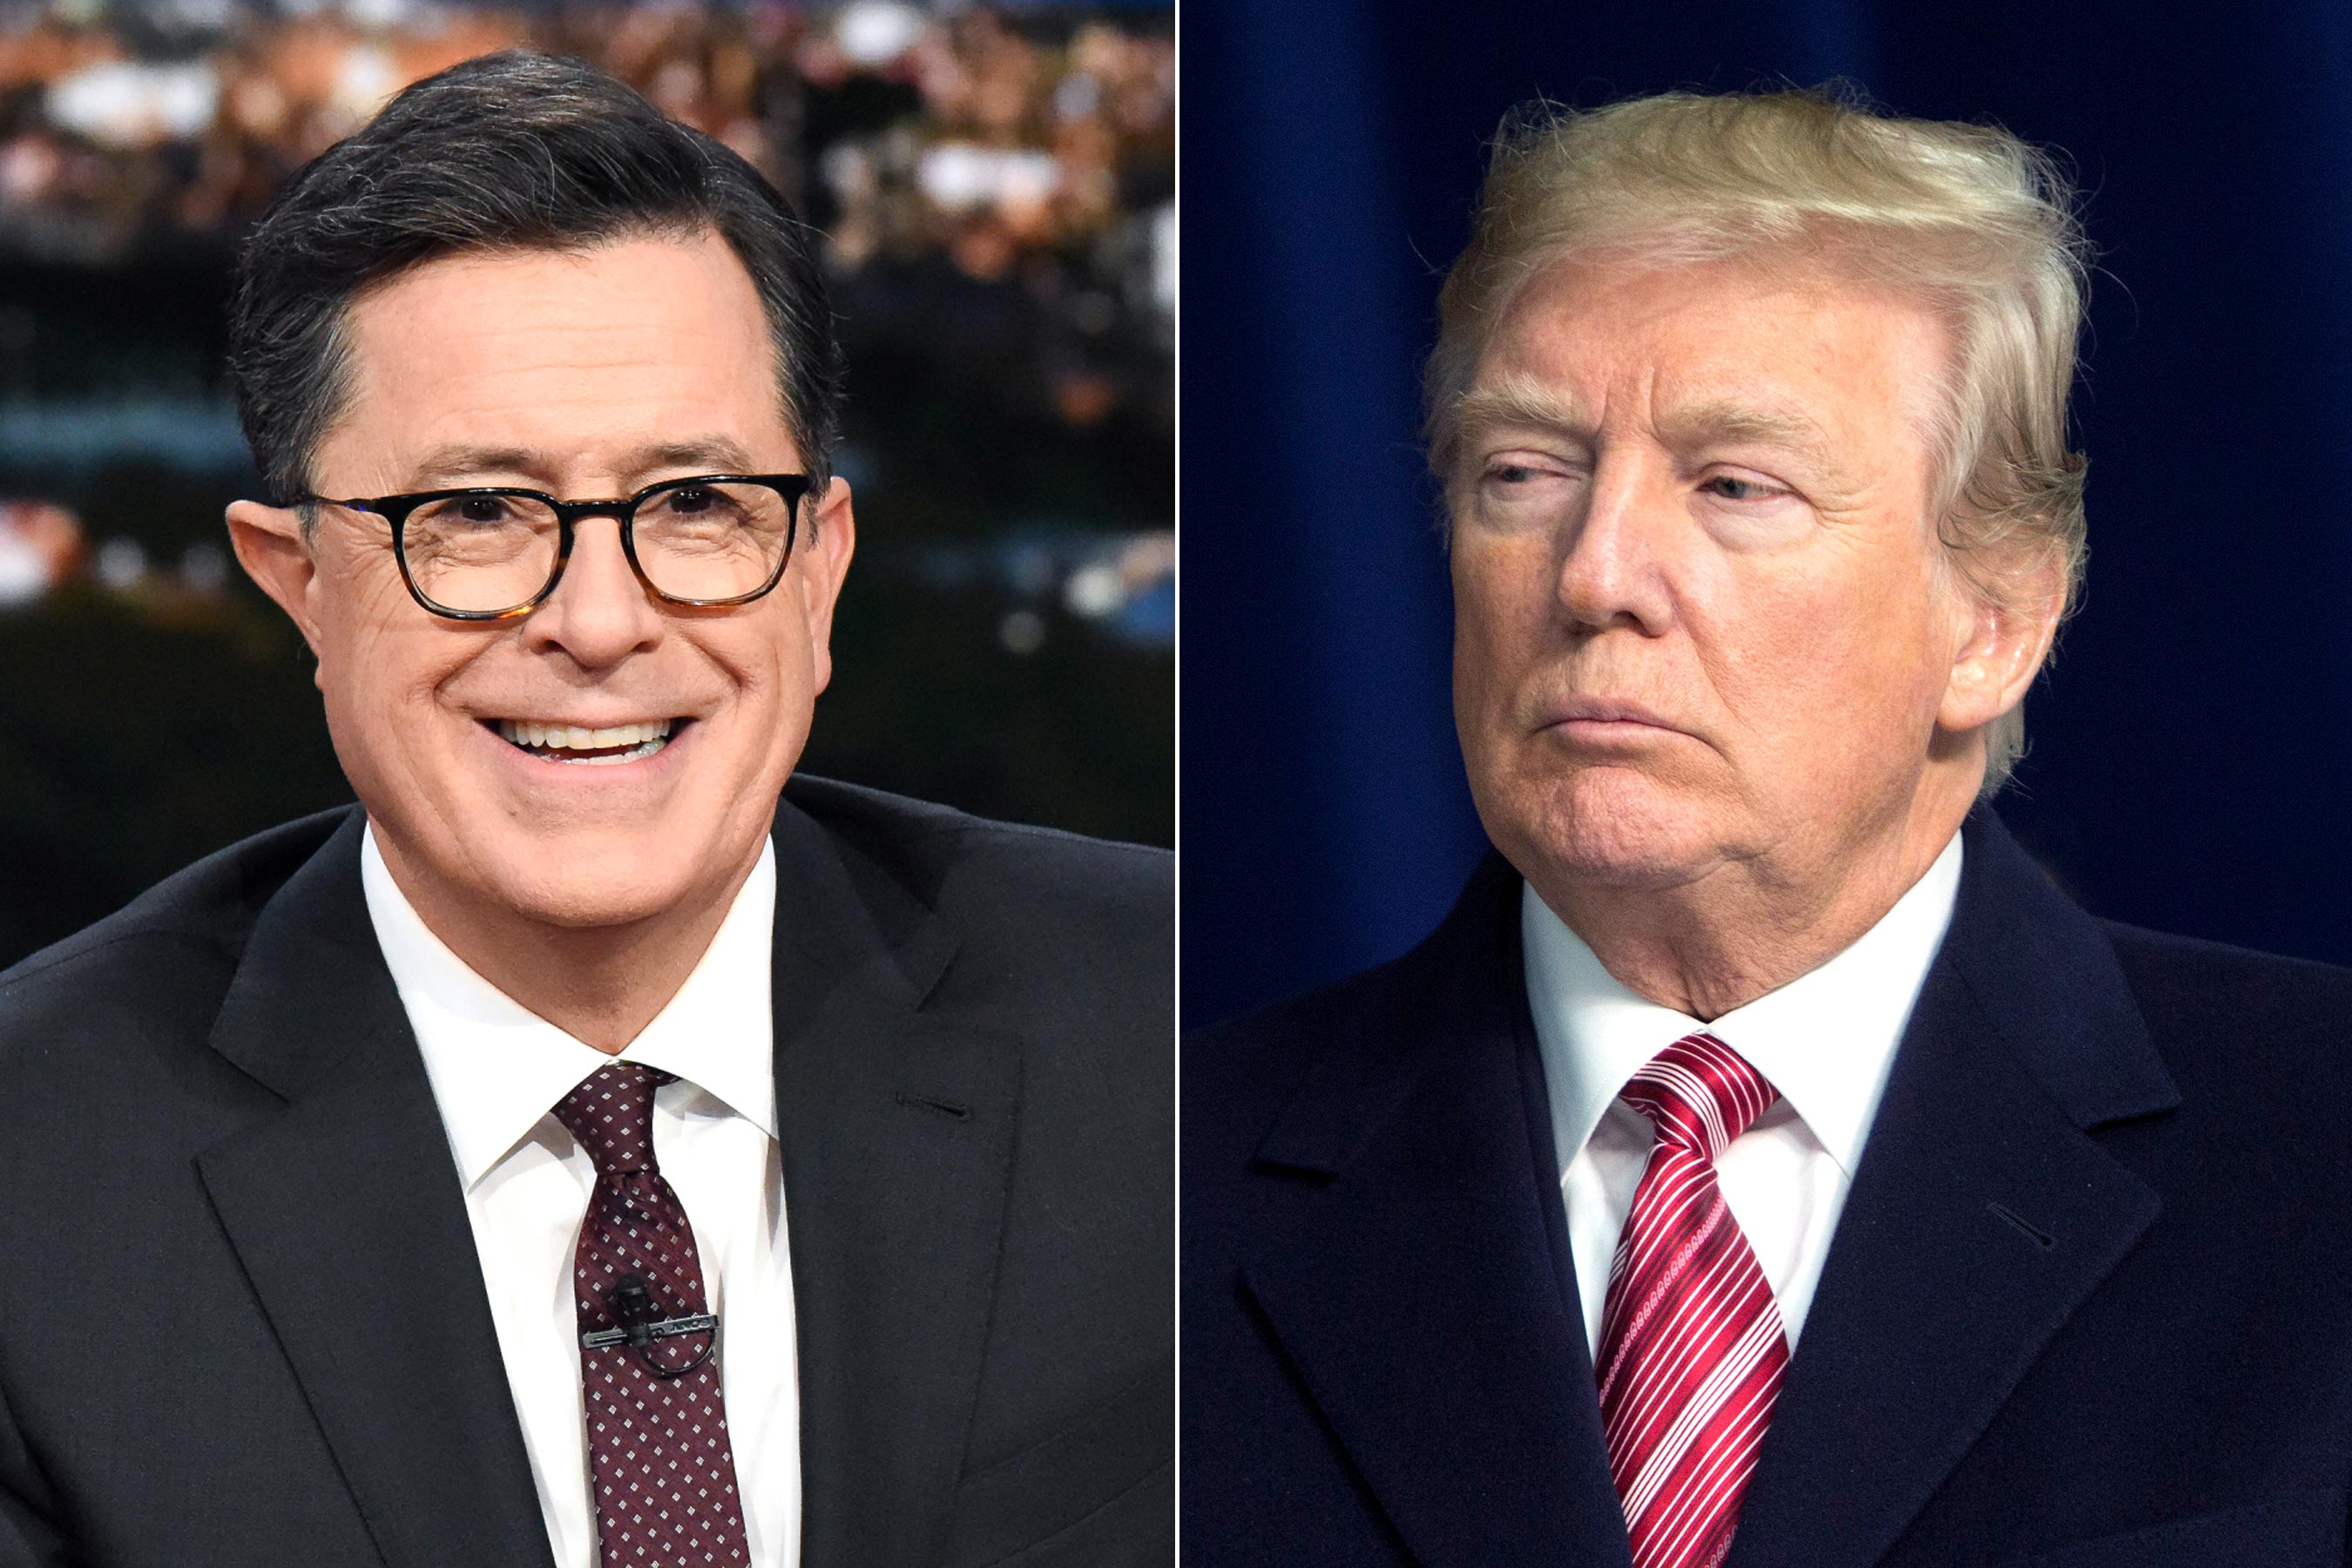 Colbert to go live after Trump's State of the Union address